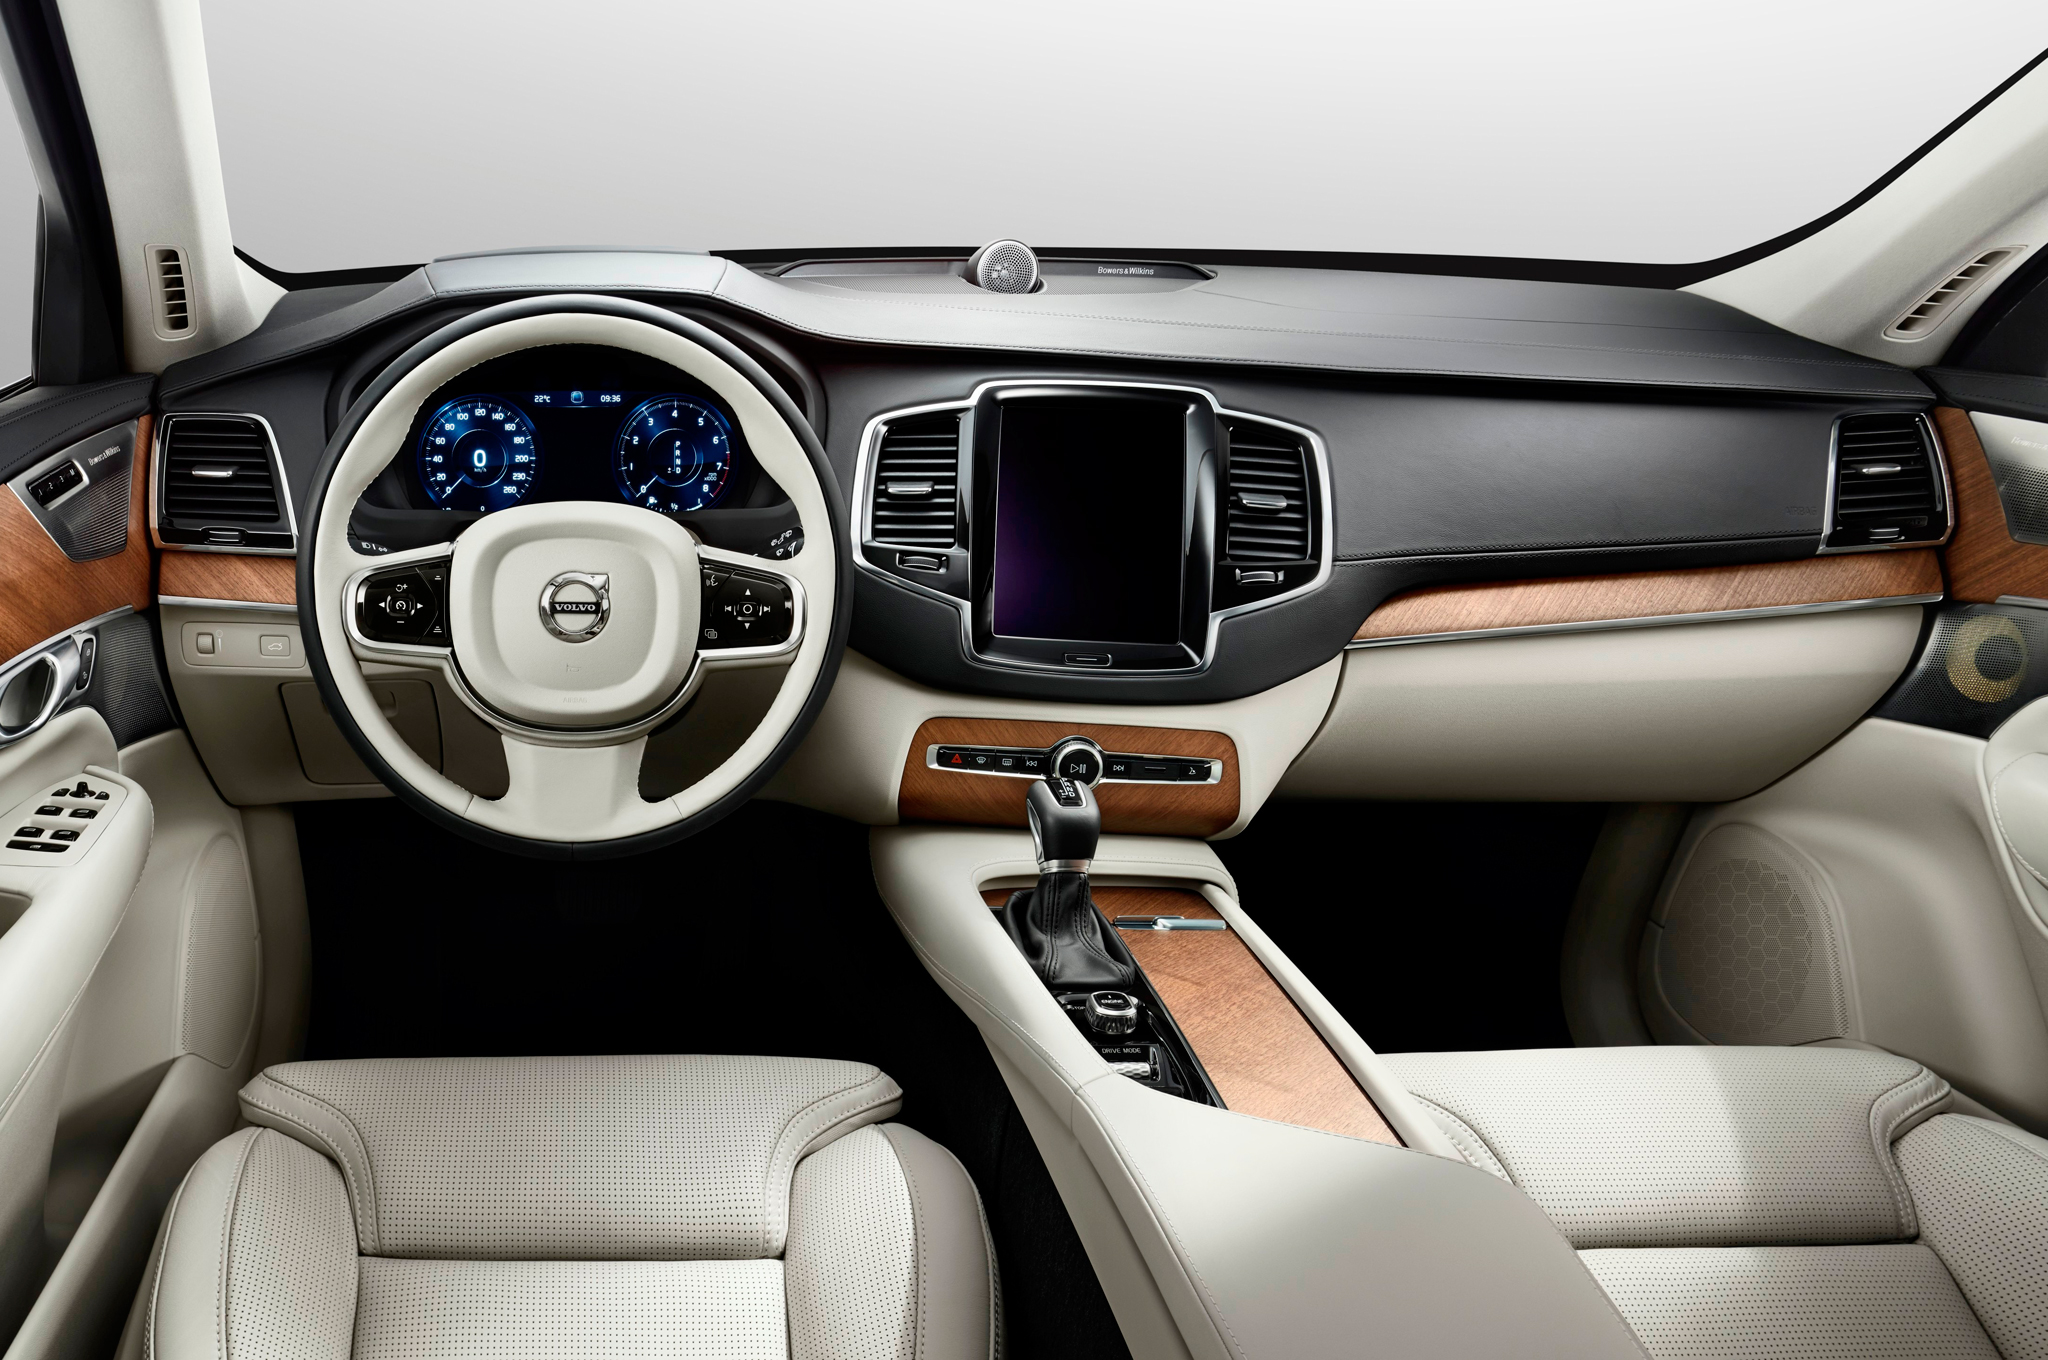 amusing-design-of-the-grey-seats-ideas-with-brown-wooden-accent-ideas-with-black-dash-as-the-volvo-v90-2016-interior